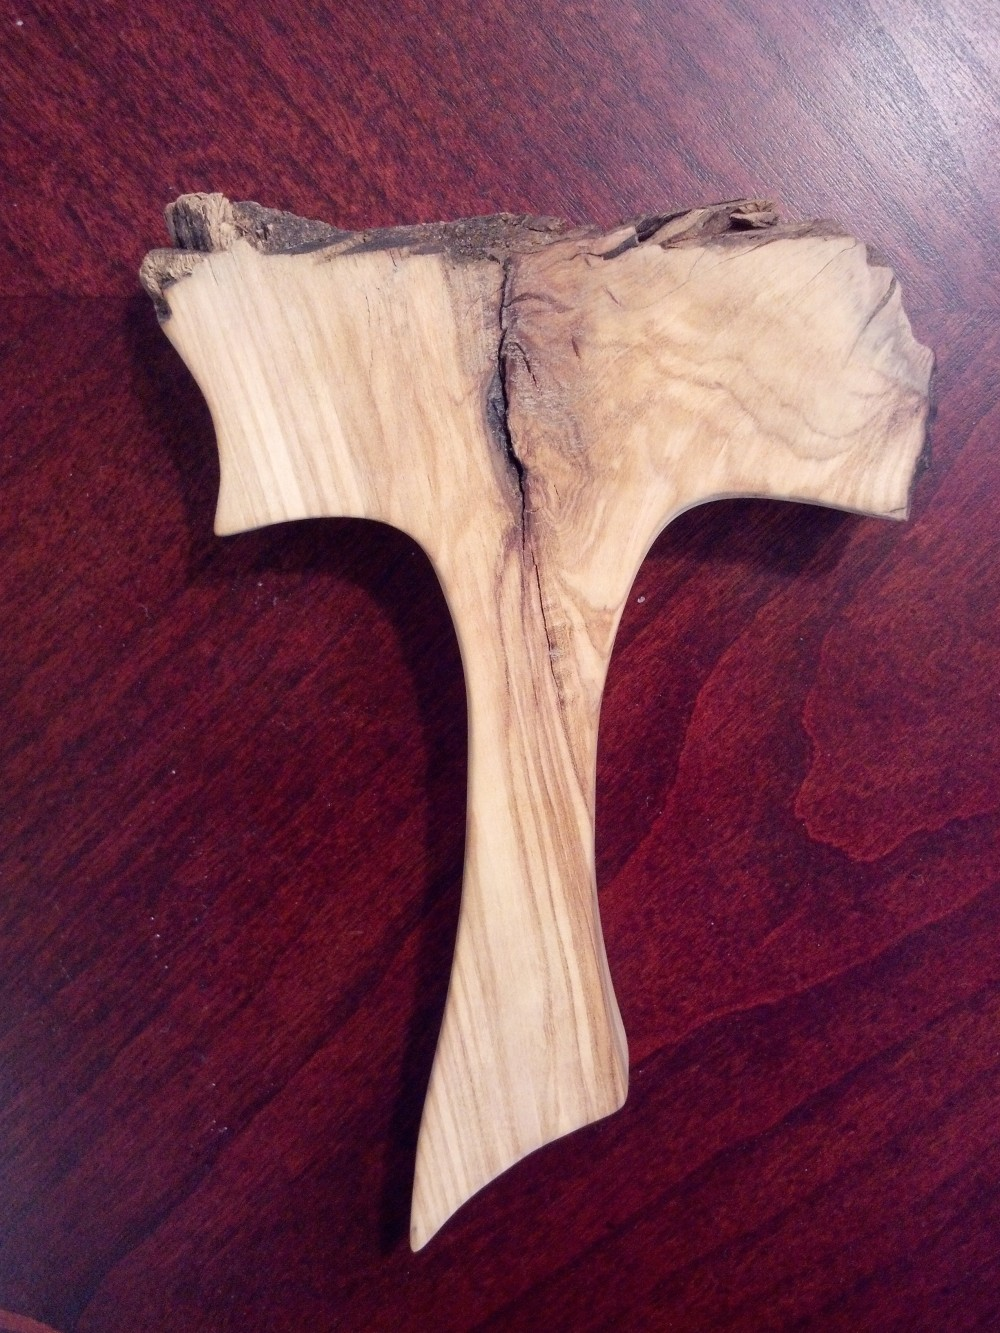 Tau Cross made out of olive wood